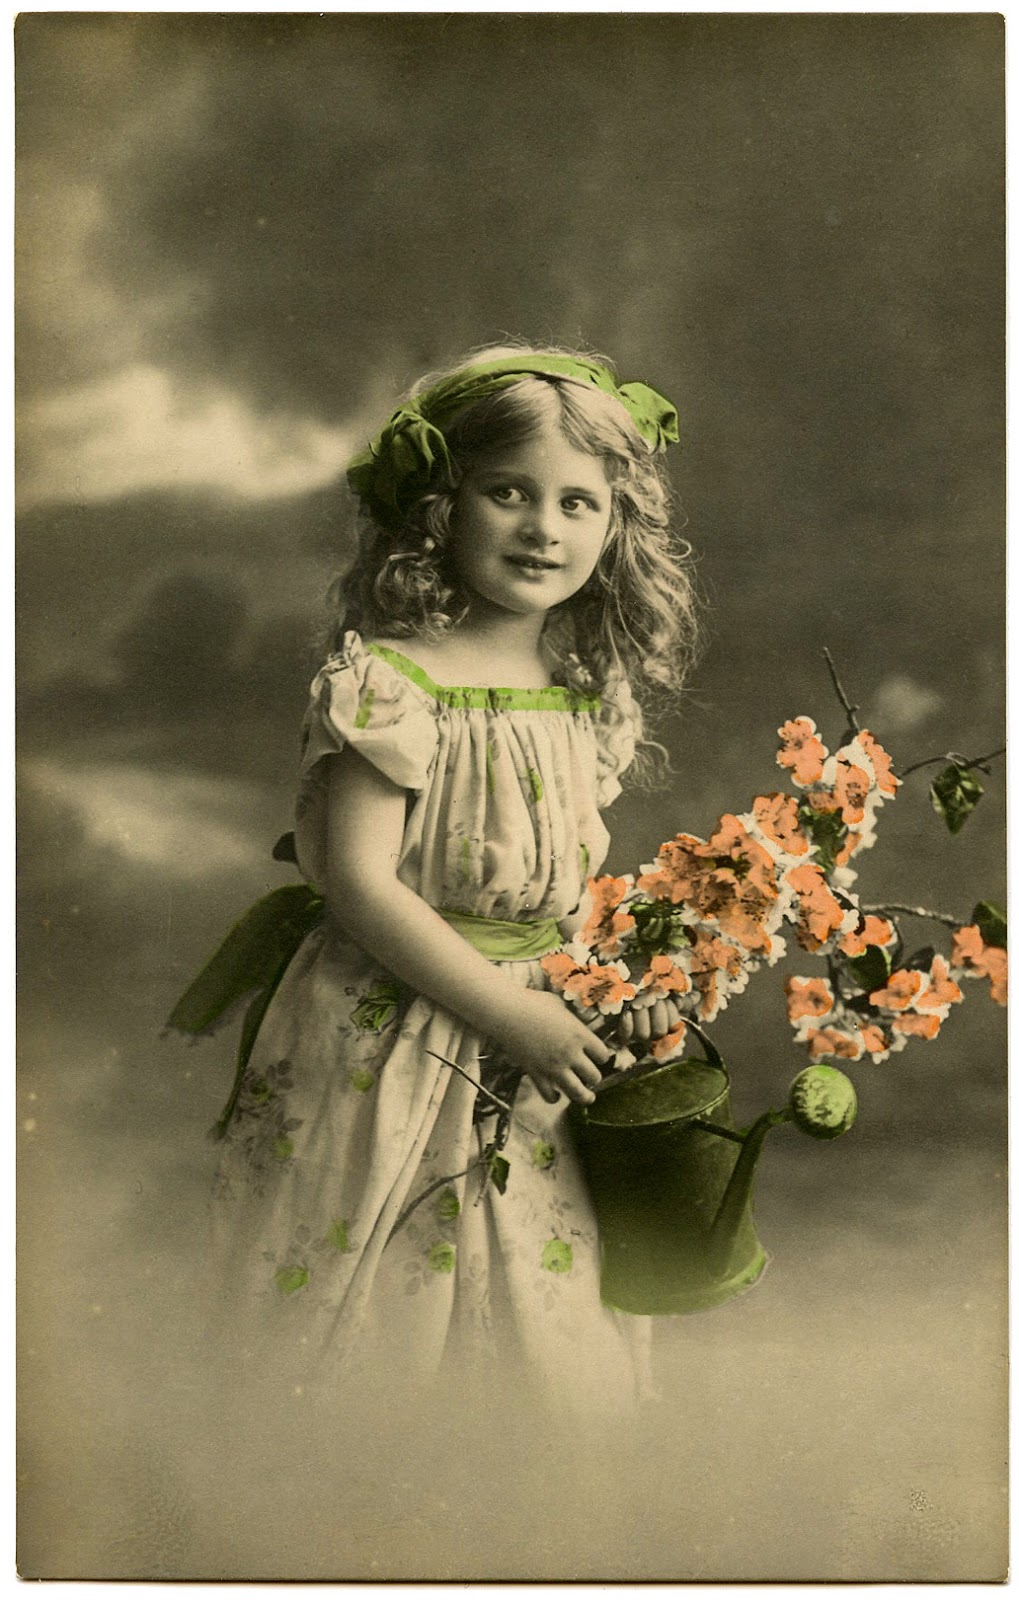 Old Photo - Pretty Little Garden Girl - The Graphics Fairy